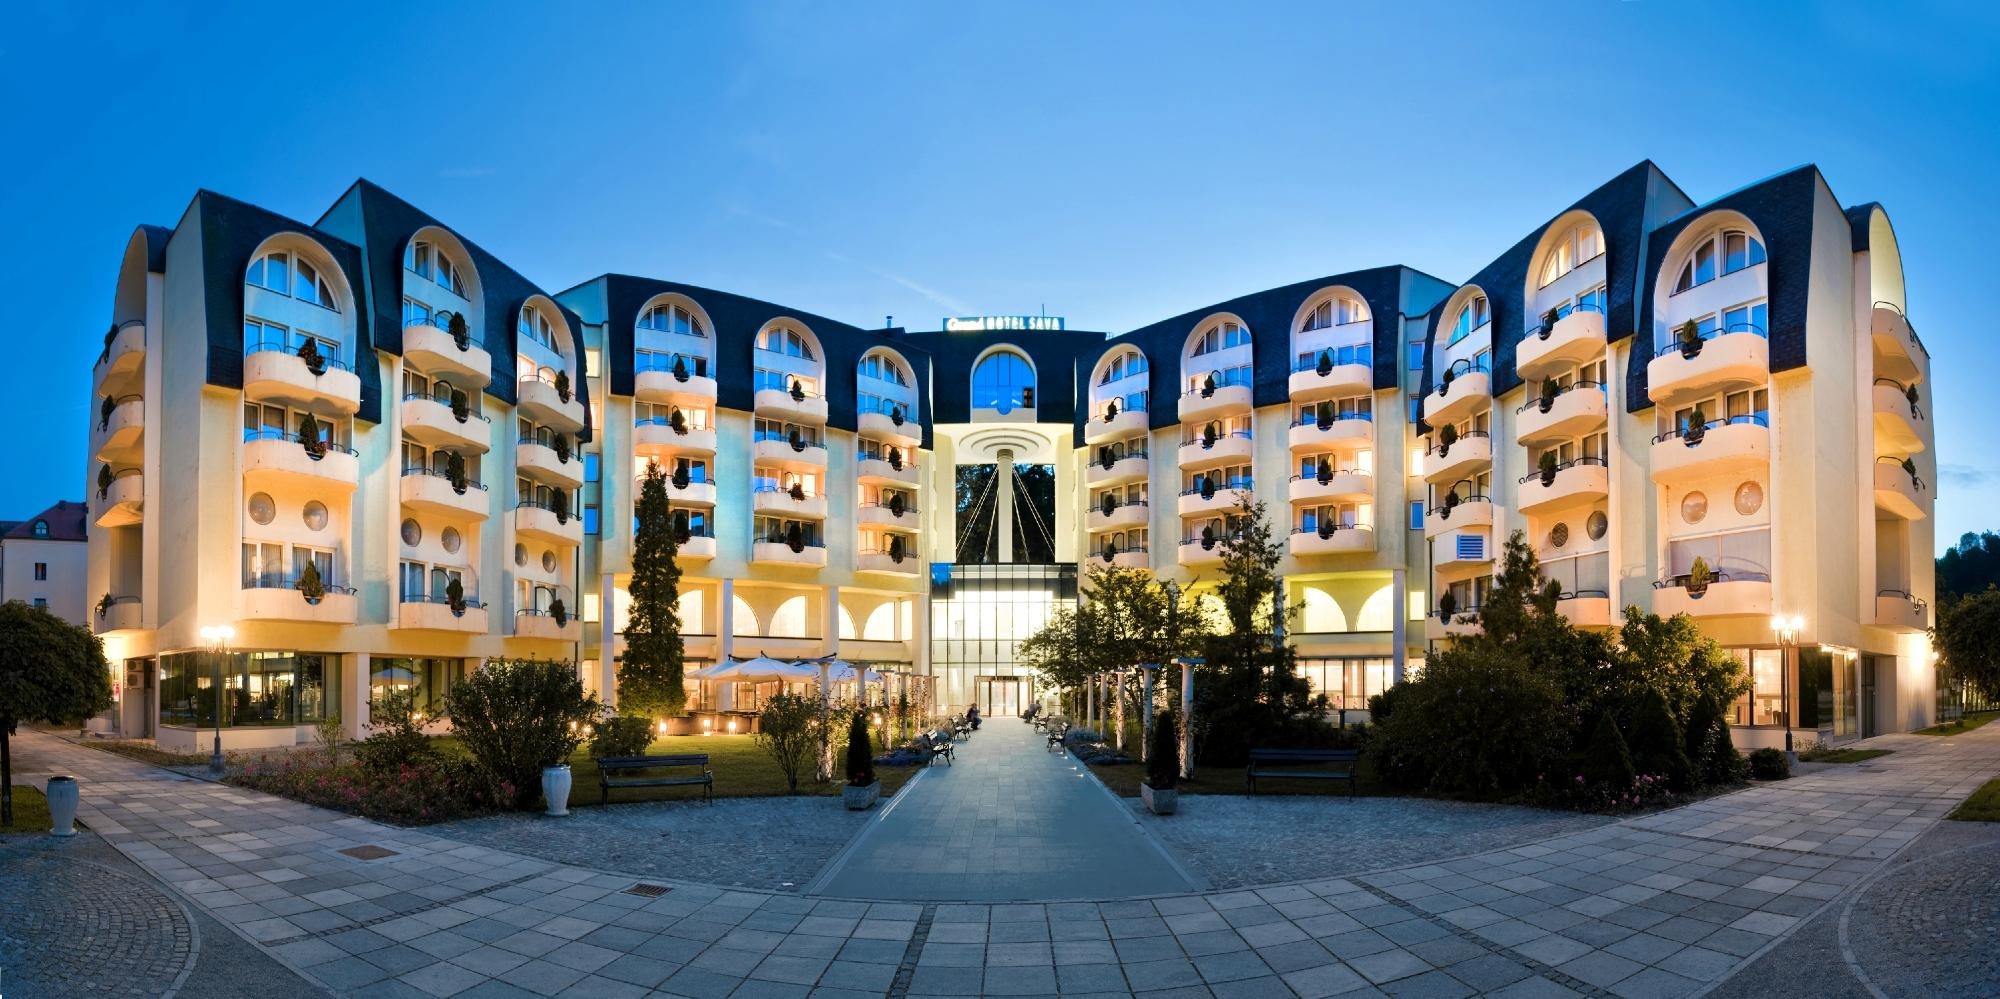 Grand Hotel Sava Rogaska - Health, Beauty & Congresses